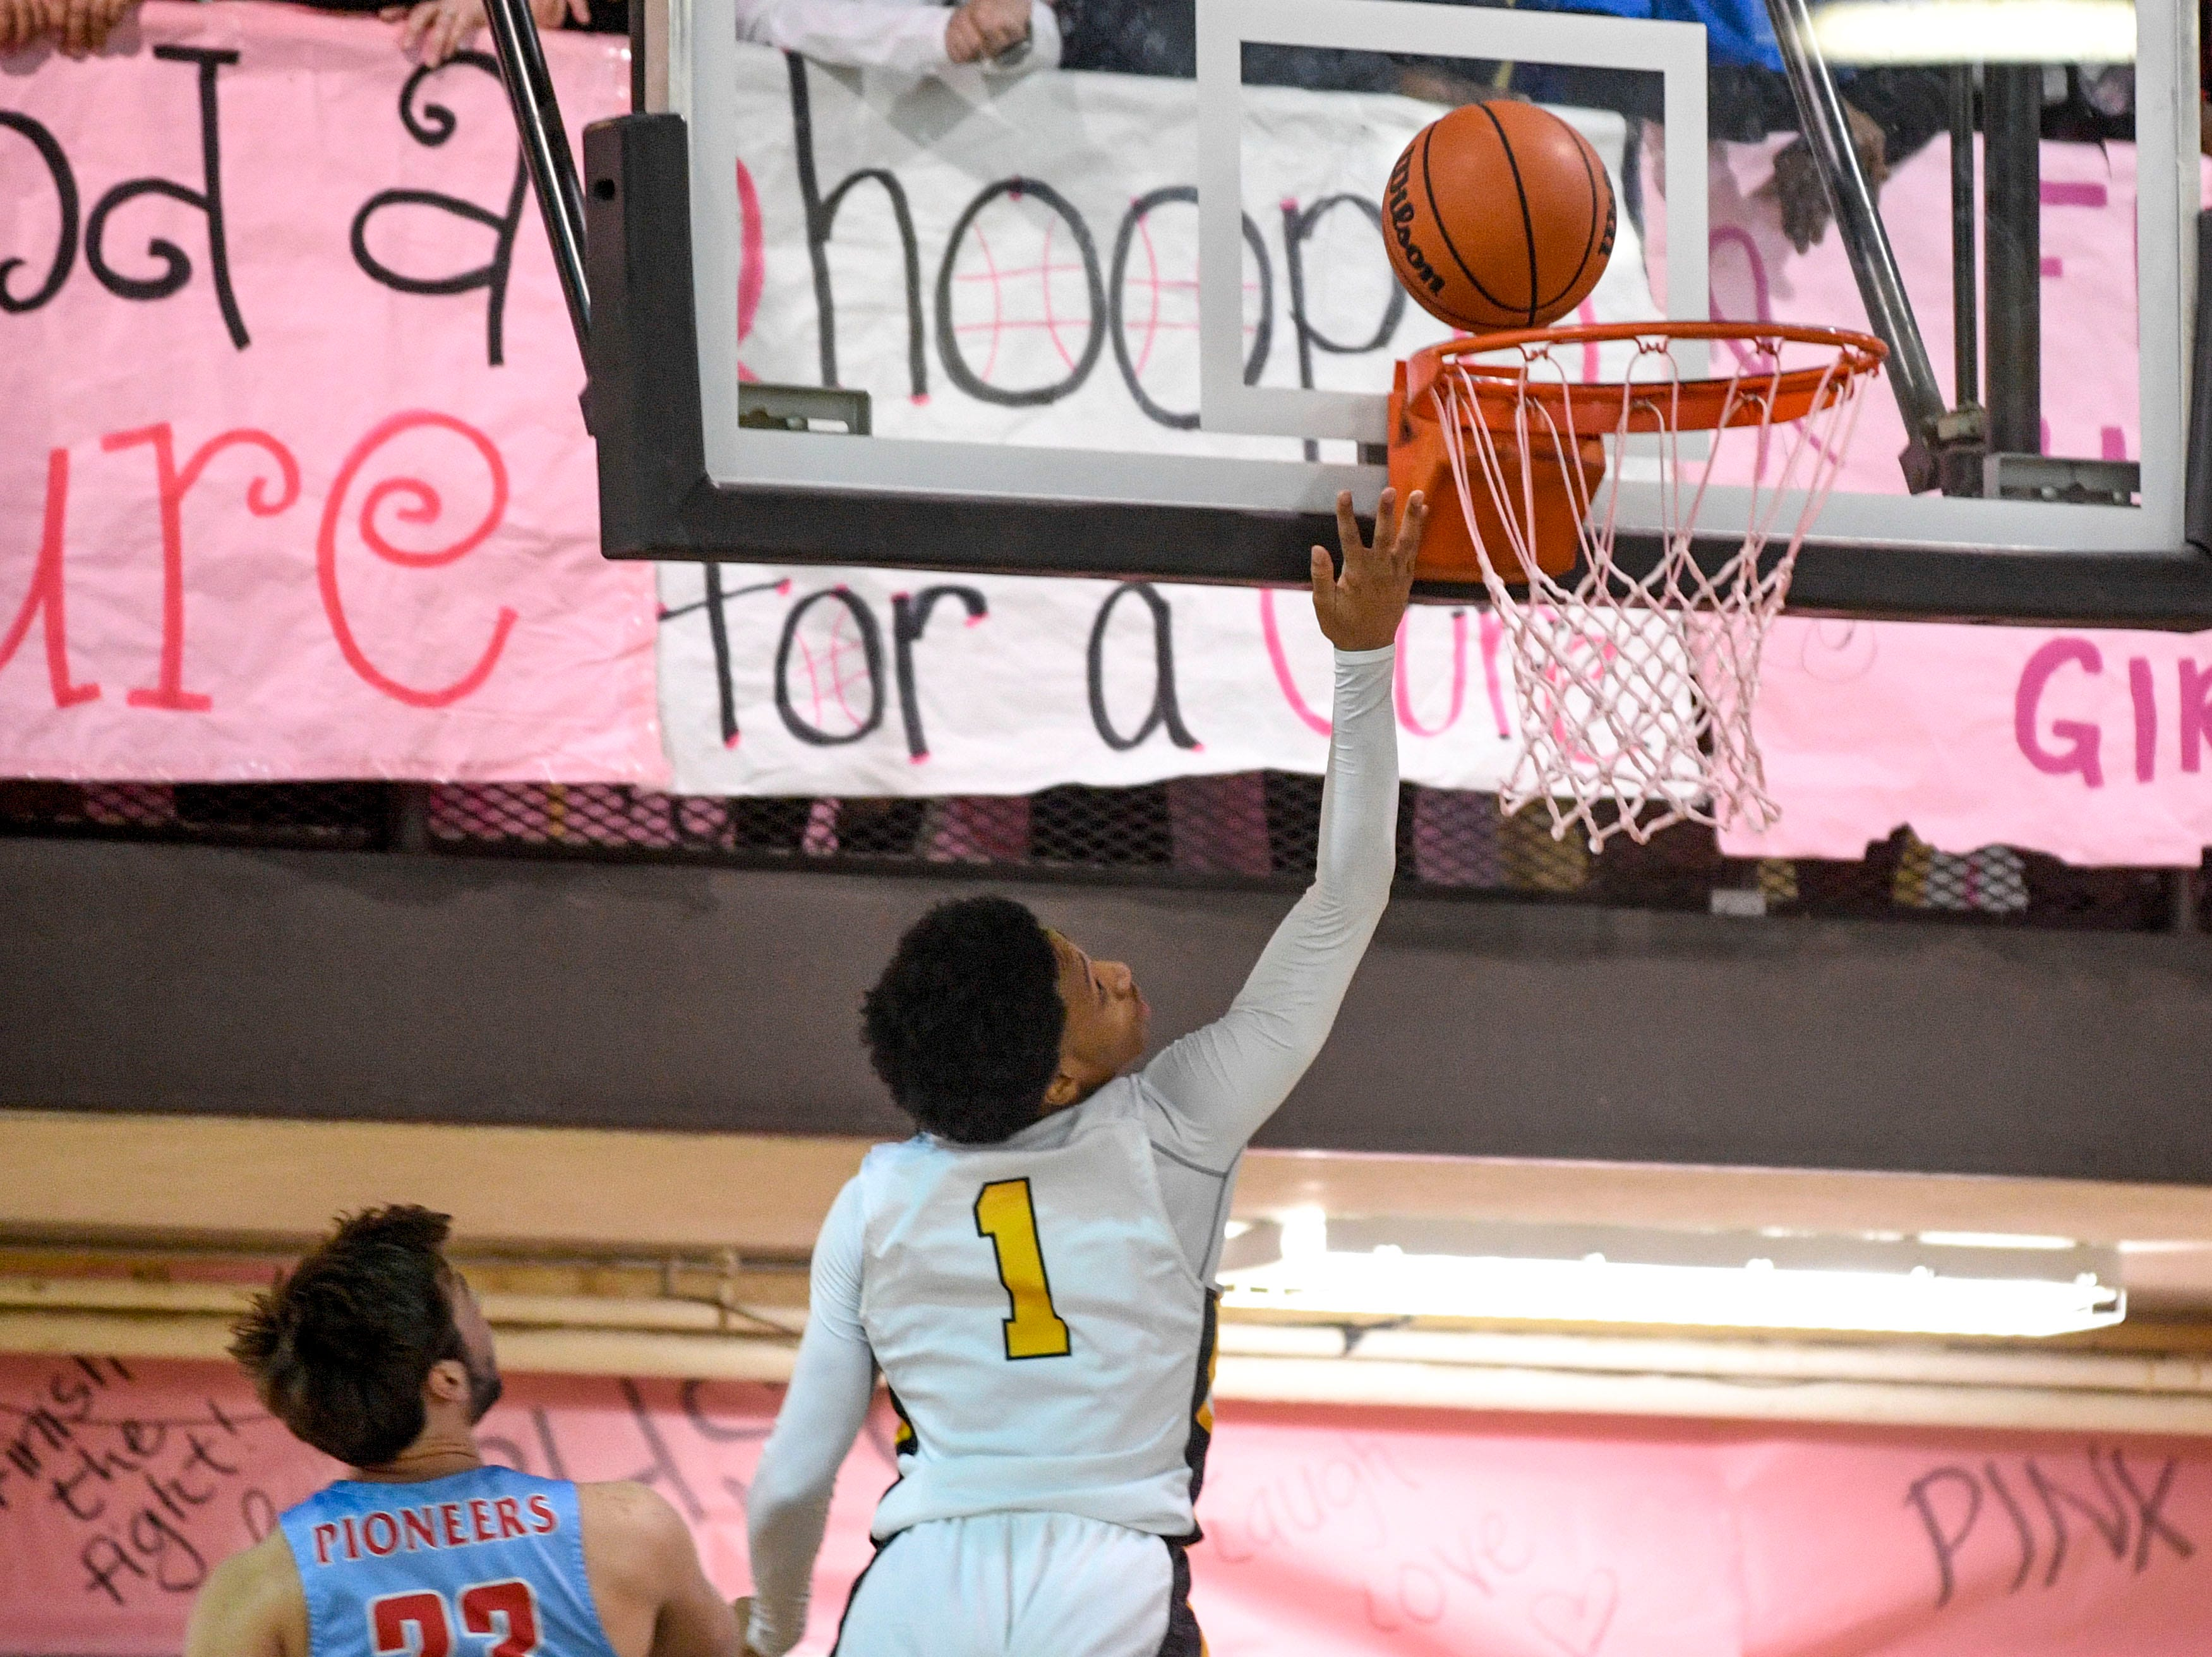 Peabody's Ja'Darius Harris (1) jumps up to shoot a layup in a TSSAA basketball game between Peabody and Gibson County at Peabody High School in Trenton, Tenn., on Friday, Feb. 8, 2019.